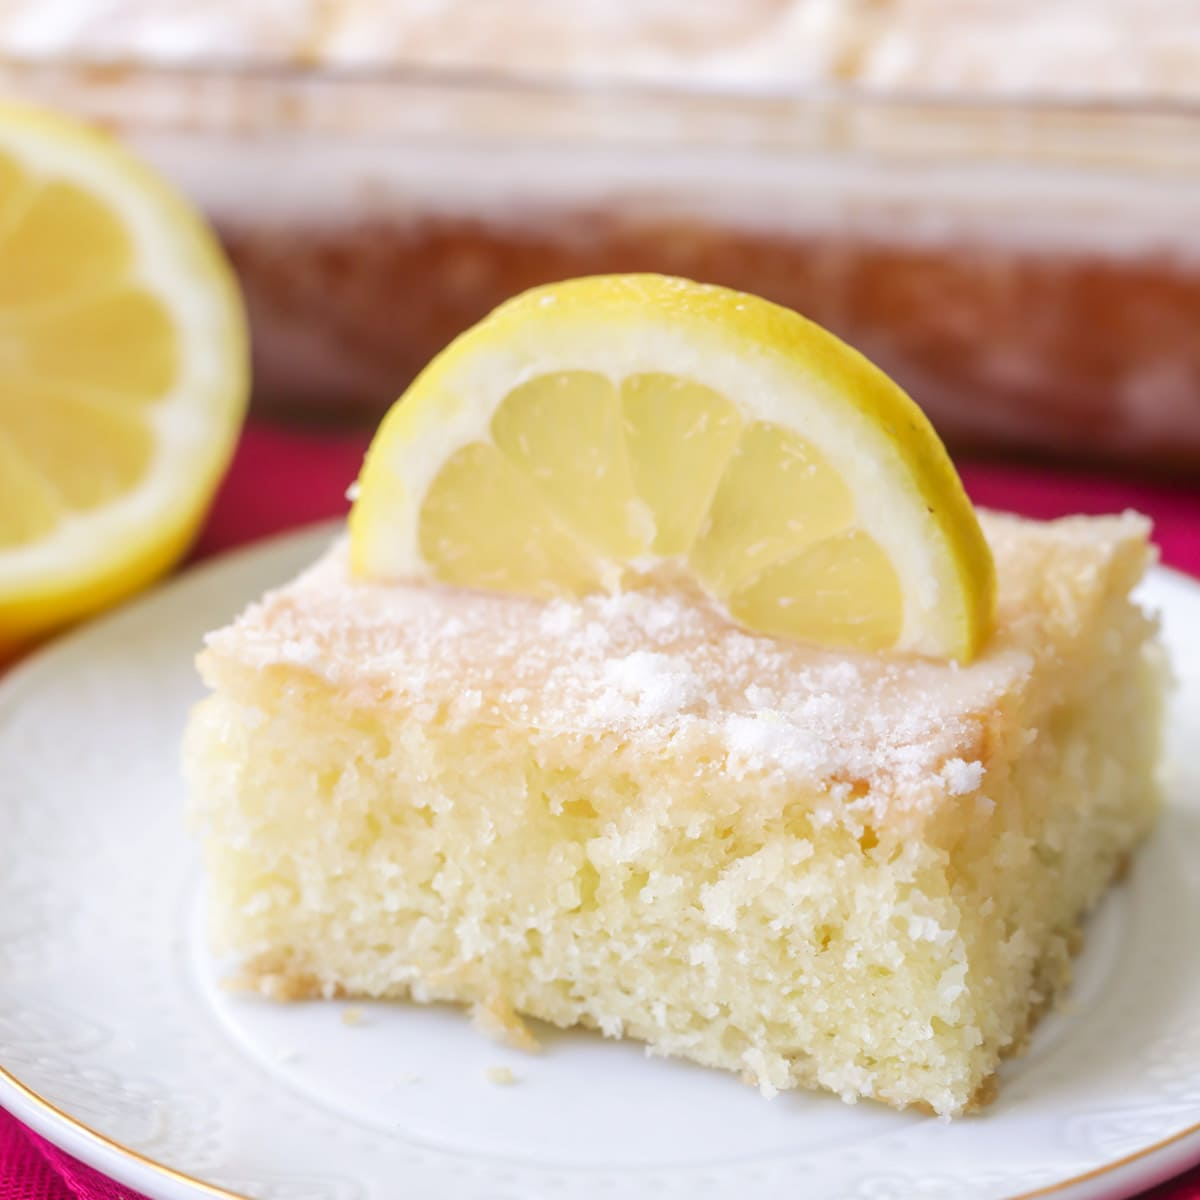 Lemon buttermilk cake garnished with a slice of lemon on a white plate.